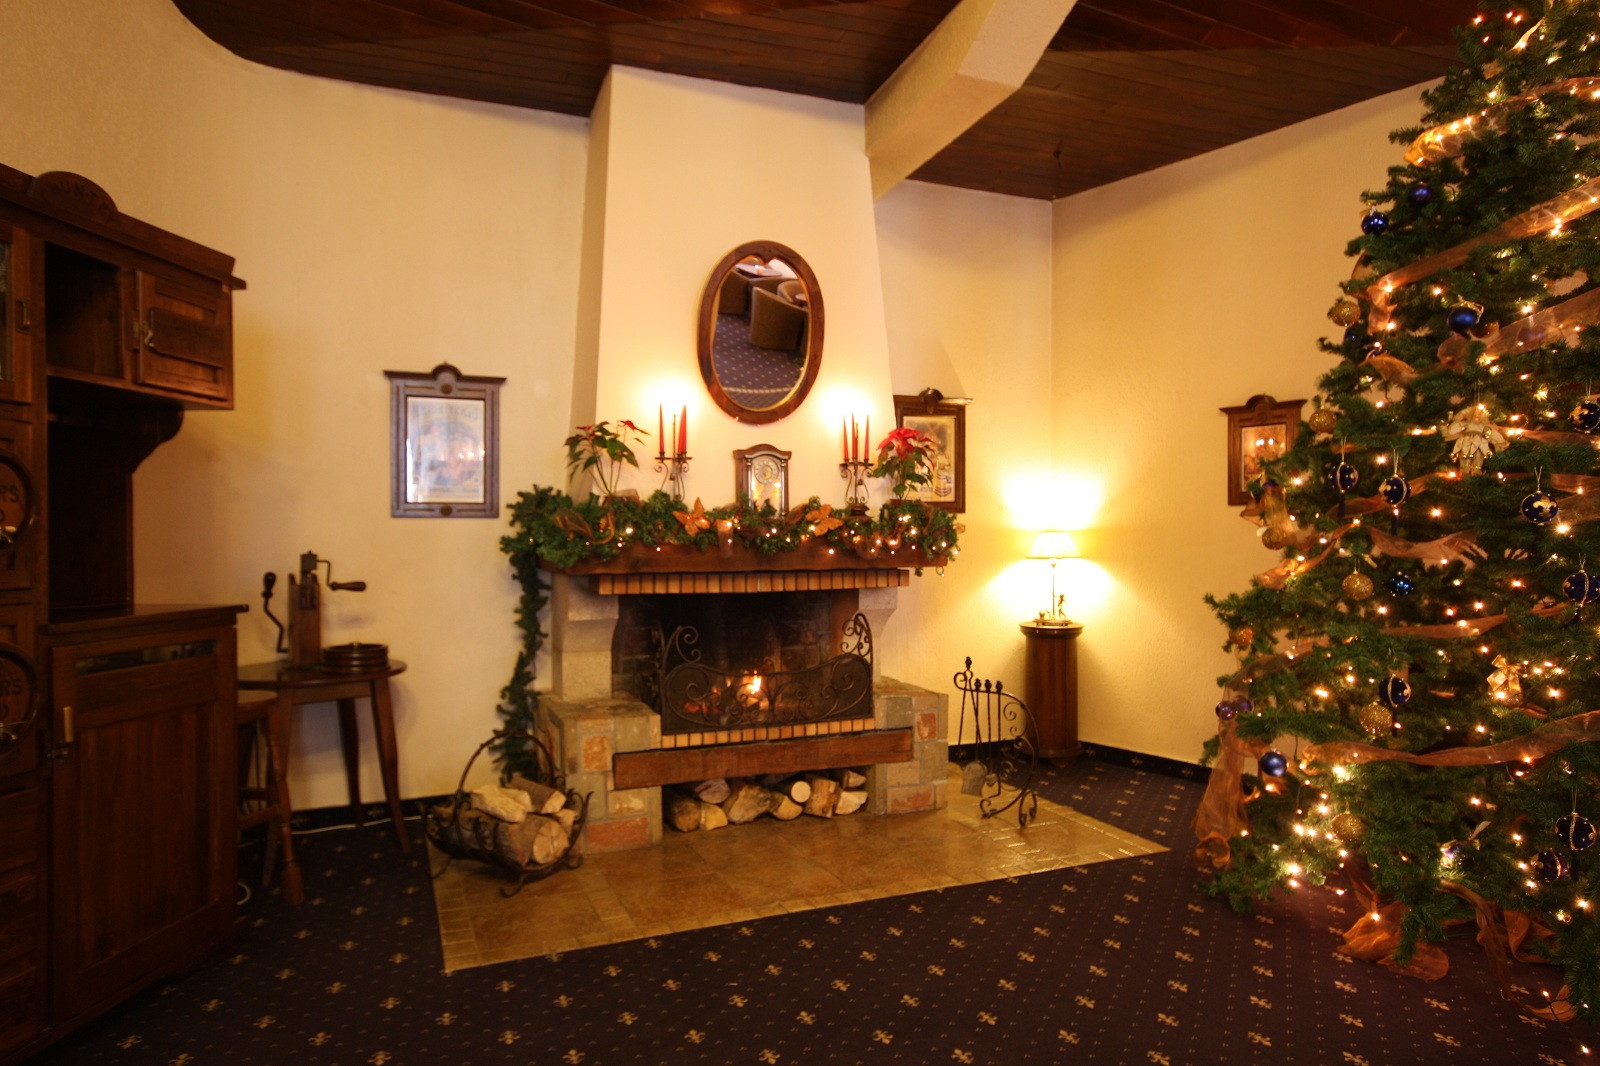 Hotels for Family Vacantion, Hotel Alpin, Brasov, Romania, Lobby